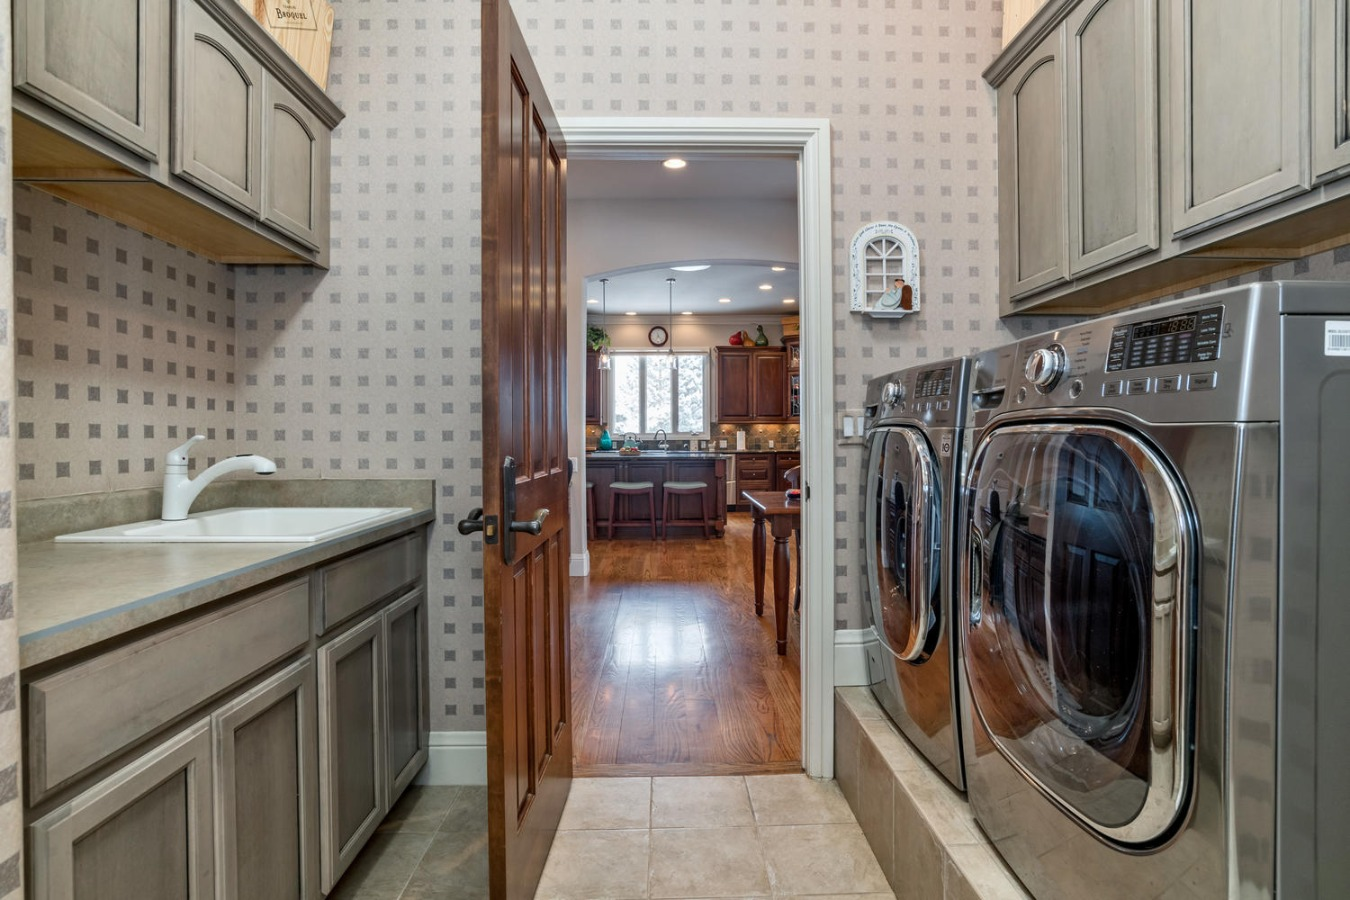 Spacious Laundry Room with Utility Sink & Storage